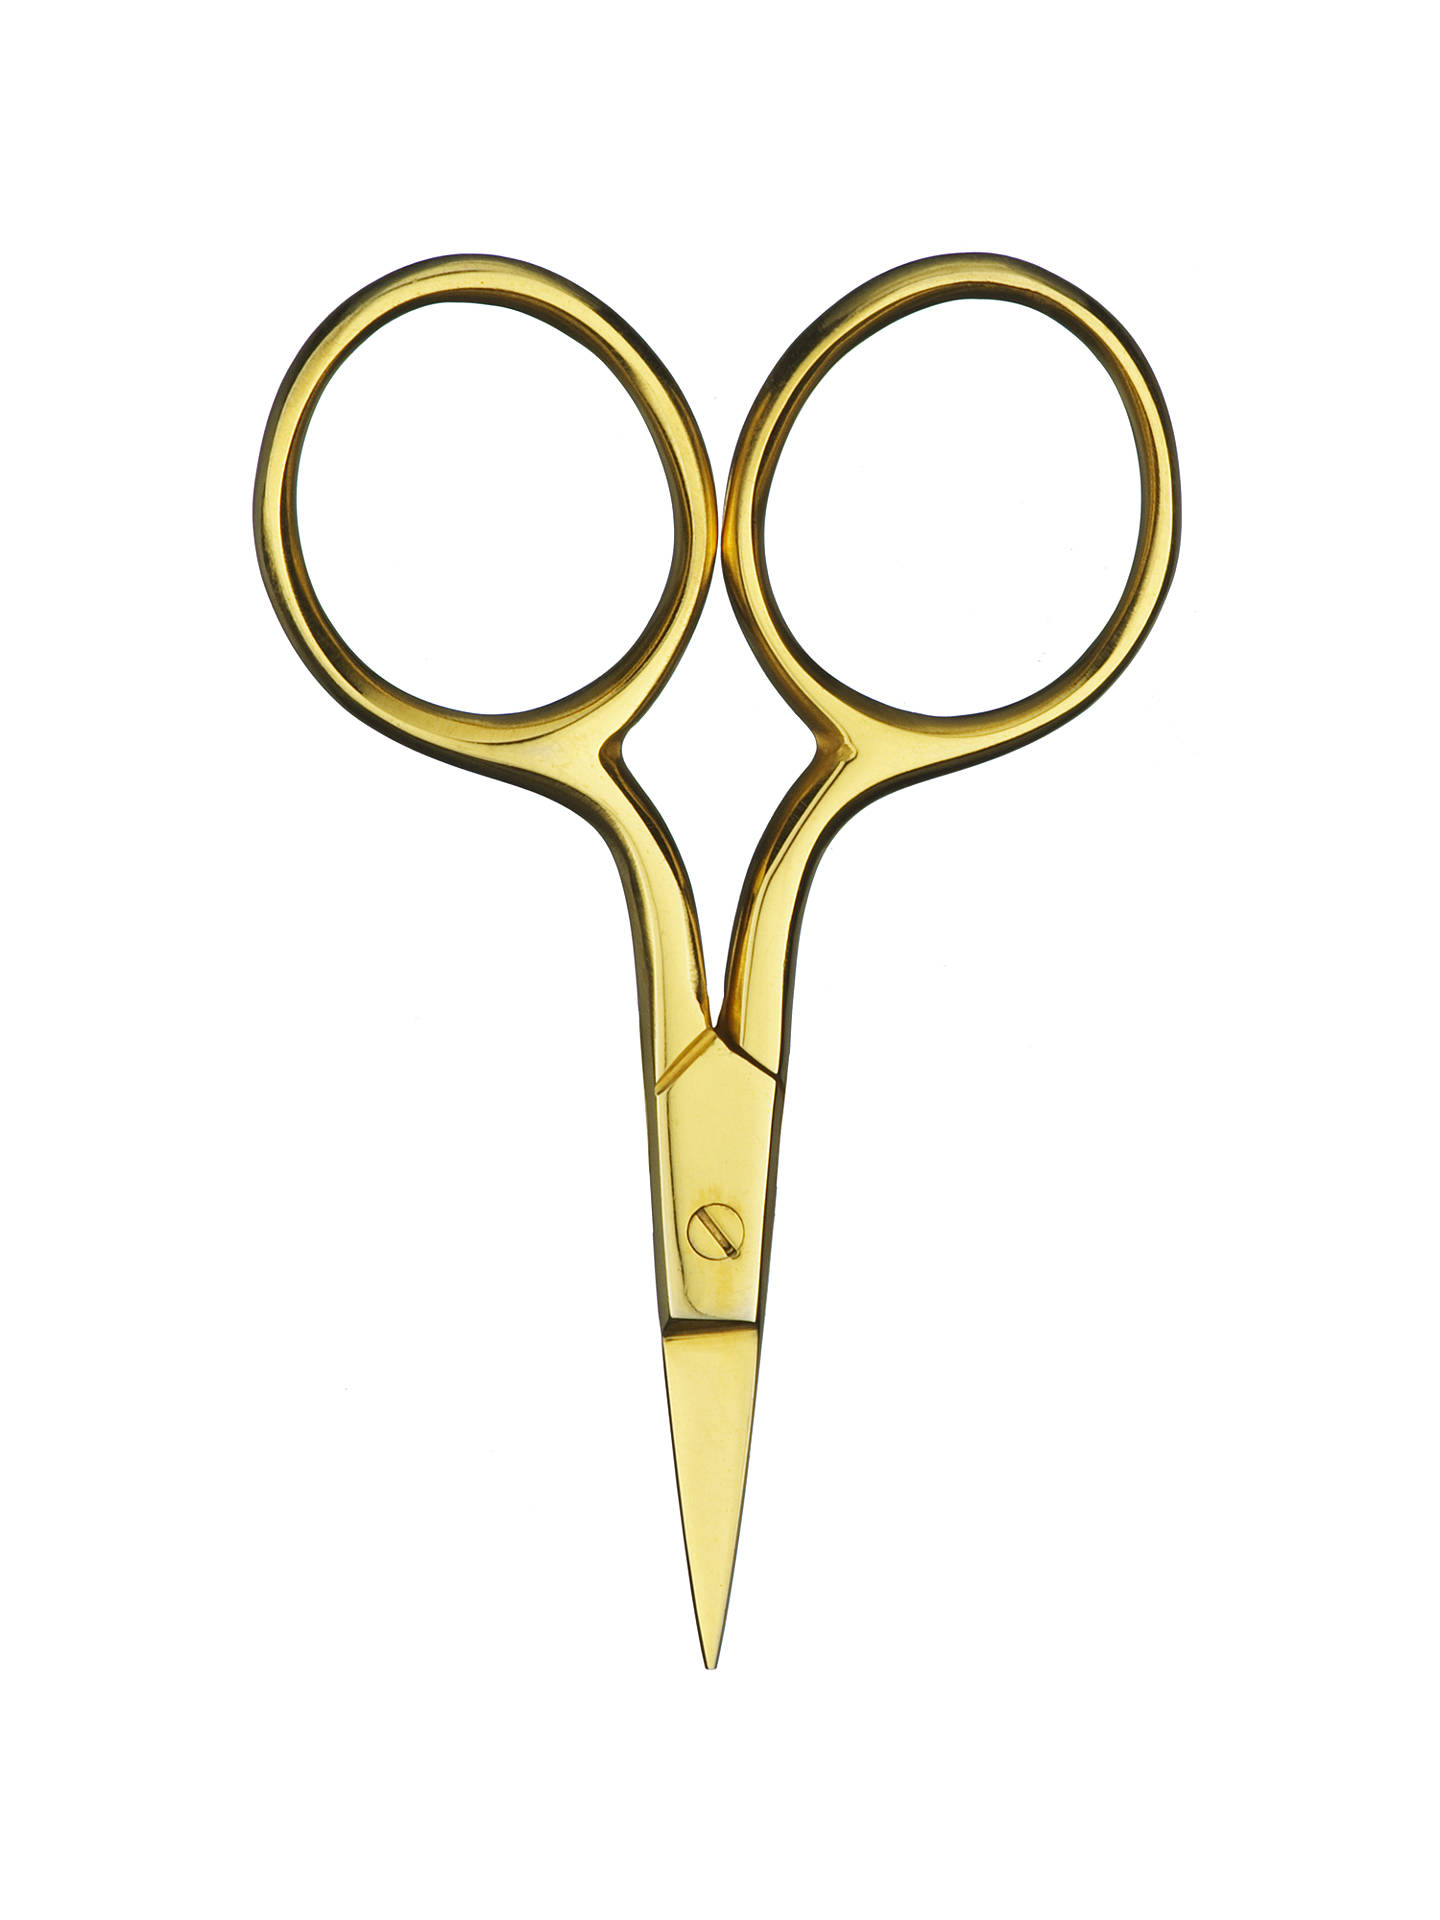 BuyBaby Gilt Embroidery Scissors Online at johnlewis.com